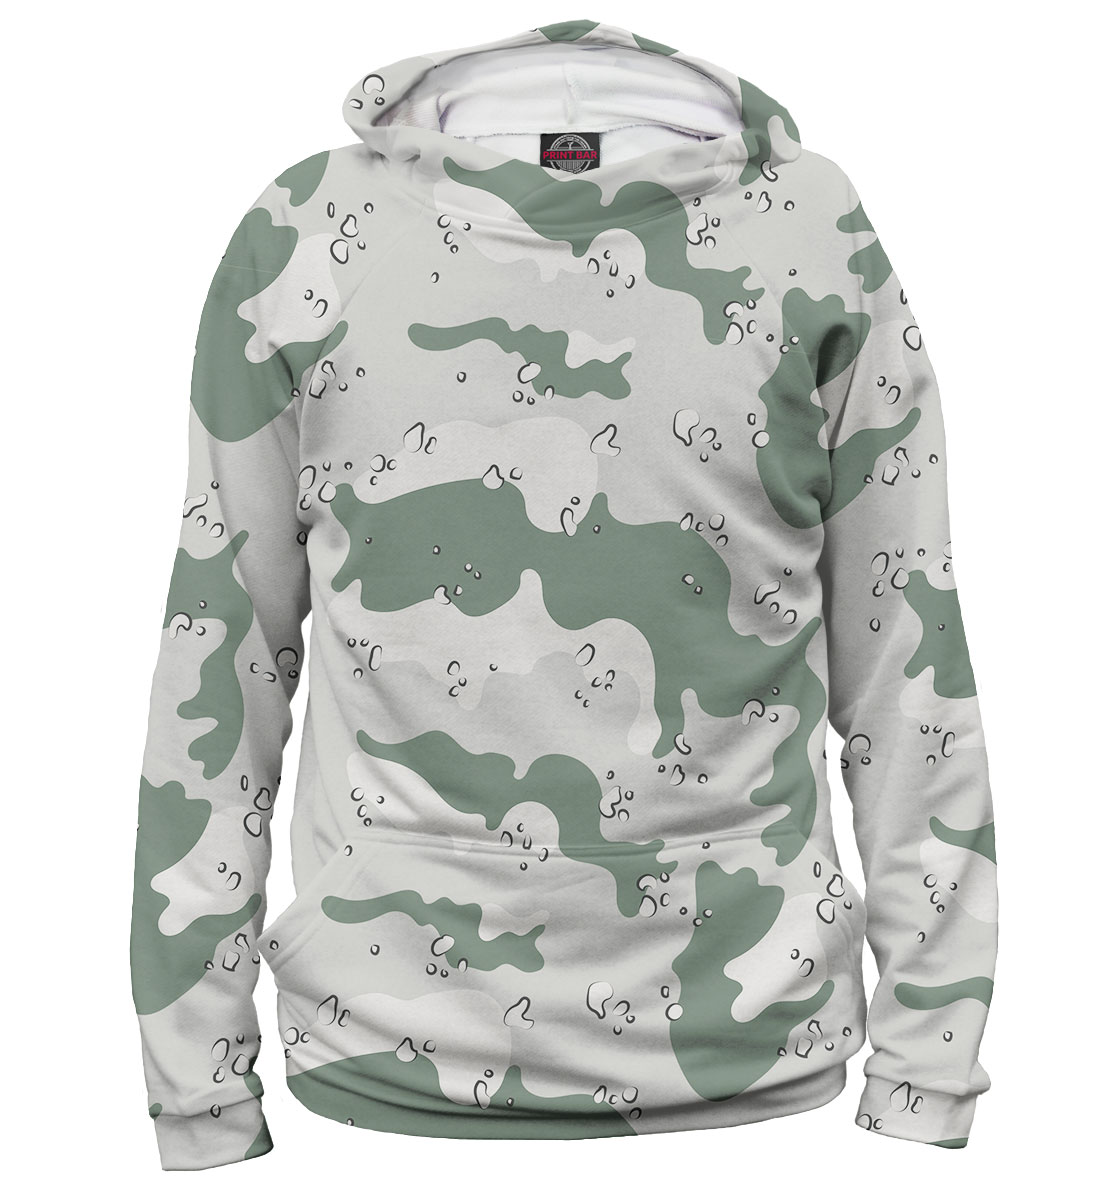 Two-Color Camouflage